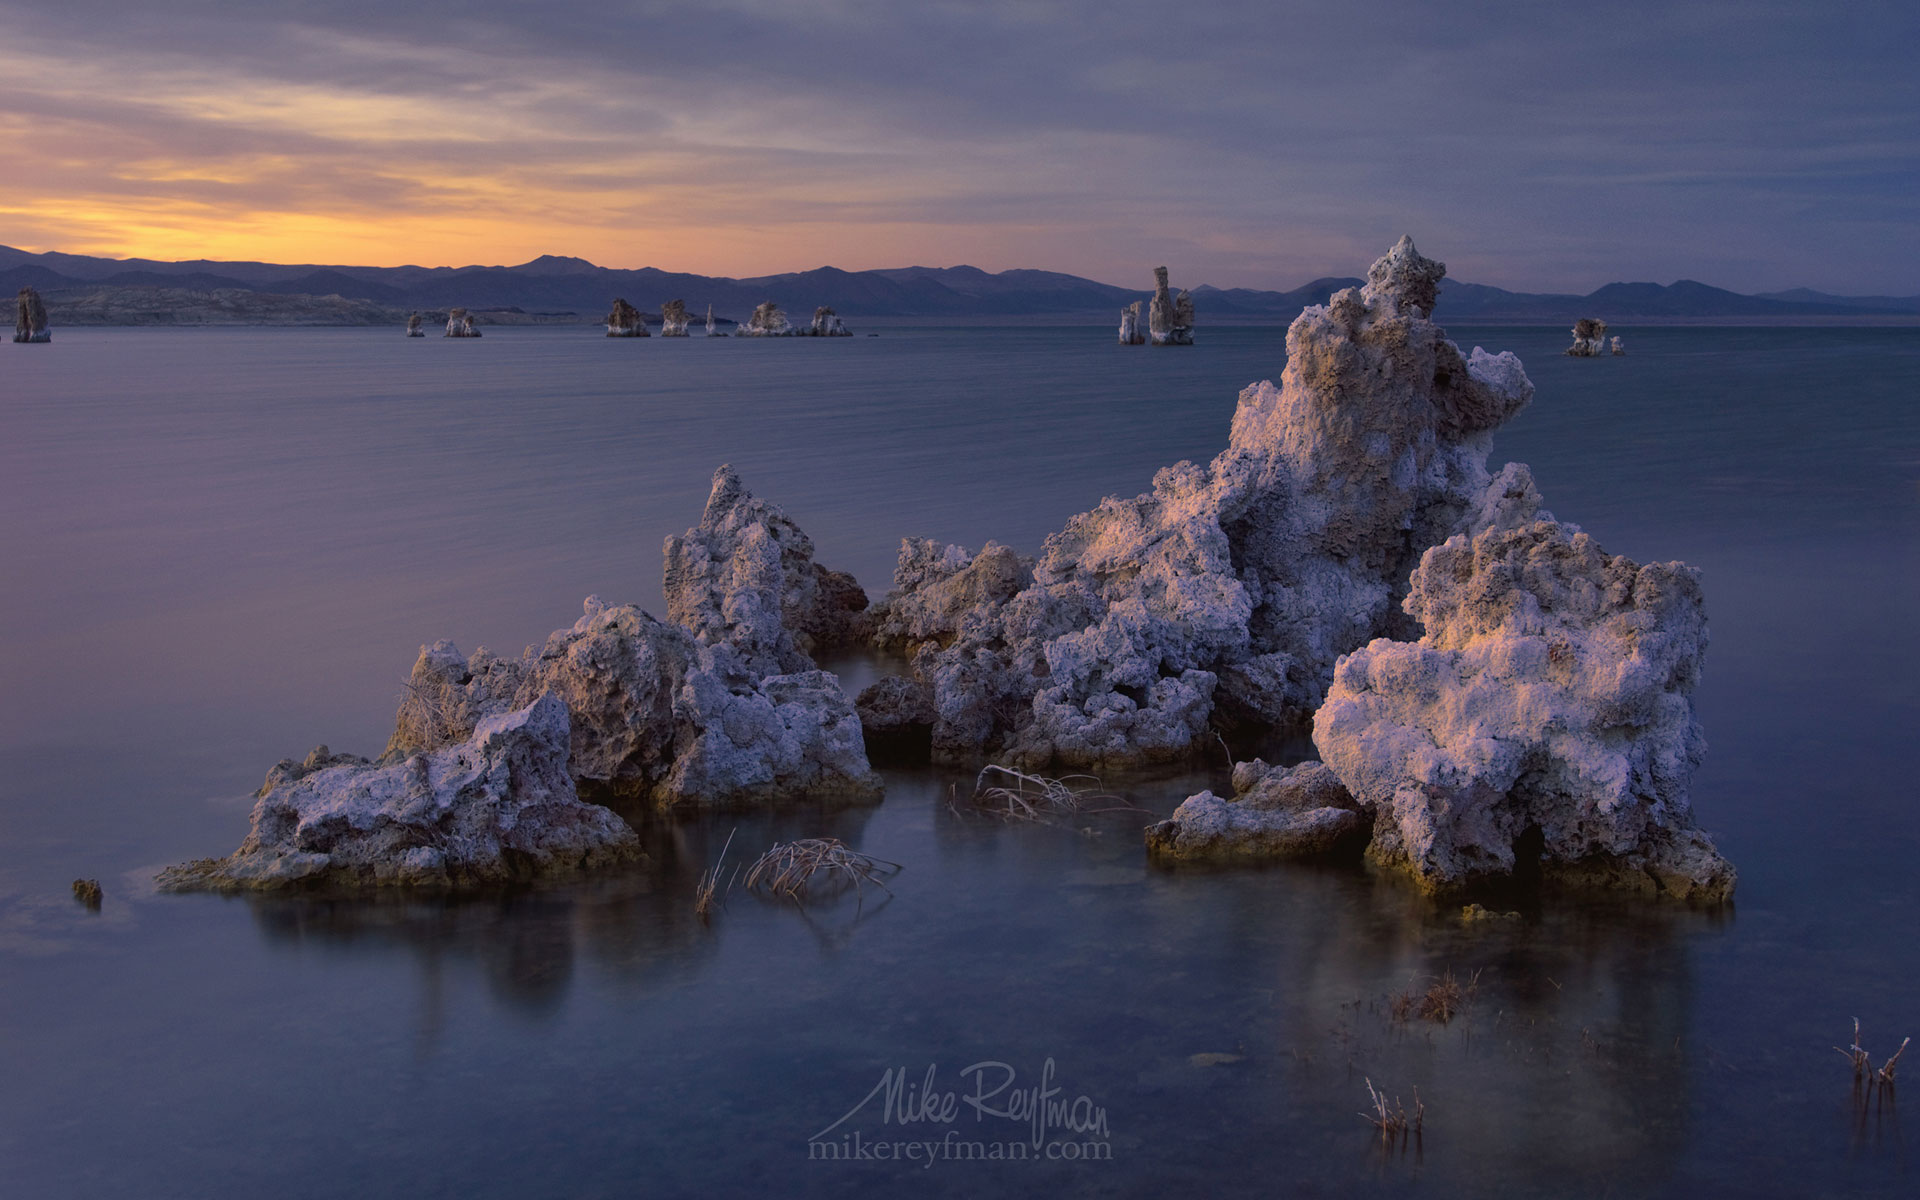 Mono Lake, Tufa State Natural Reserve, Eastern Sierra, California, USA ML1-MRMRO6624 - Mono Lake Tufa State Natural Reserve, Eastern Sierra, California - Mike Reyfman Photography